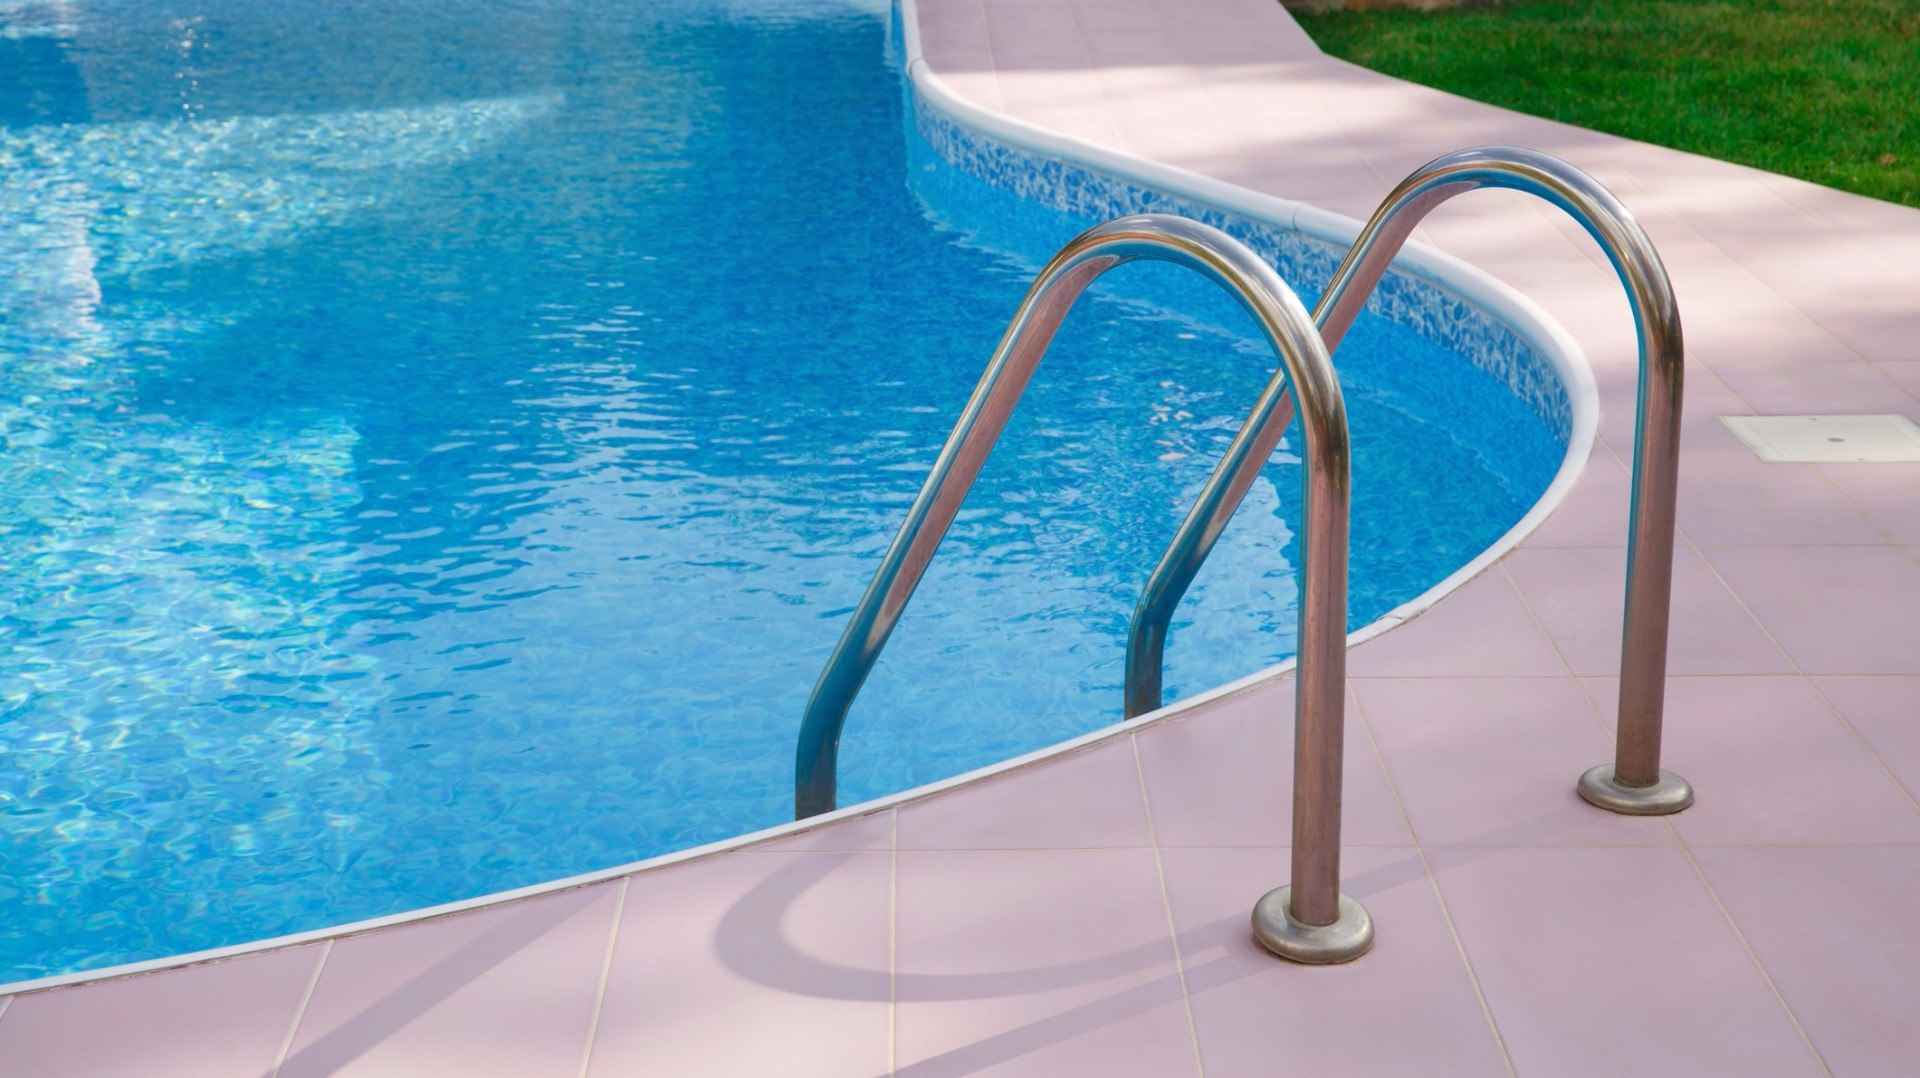 Thousands Of Swimming Pool Motors Recalled Due To Electrical Shock Hazard